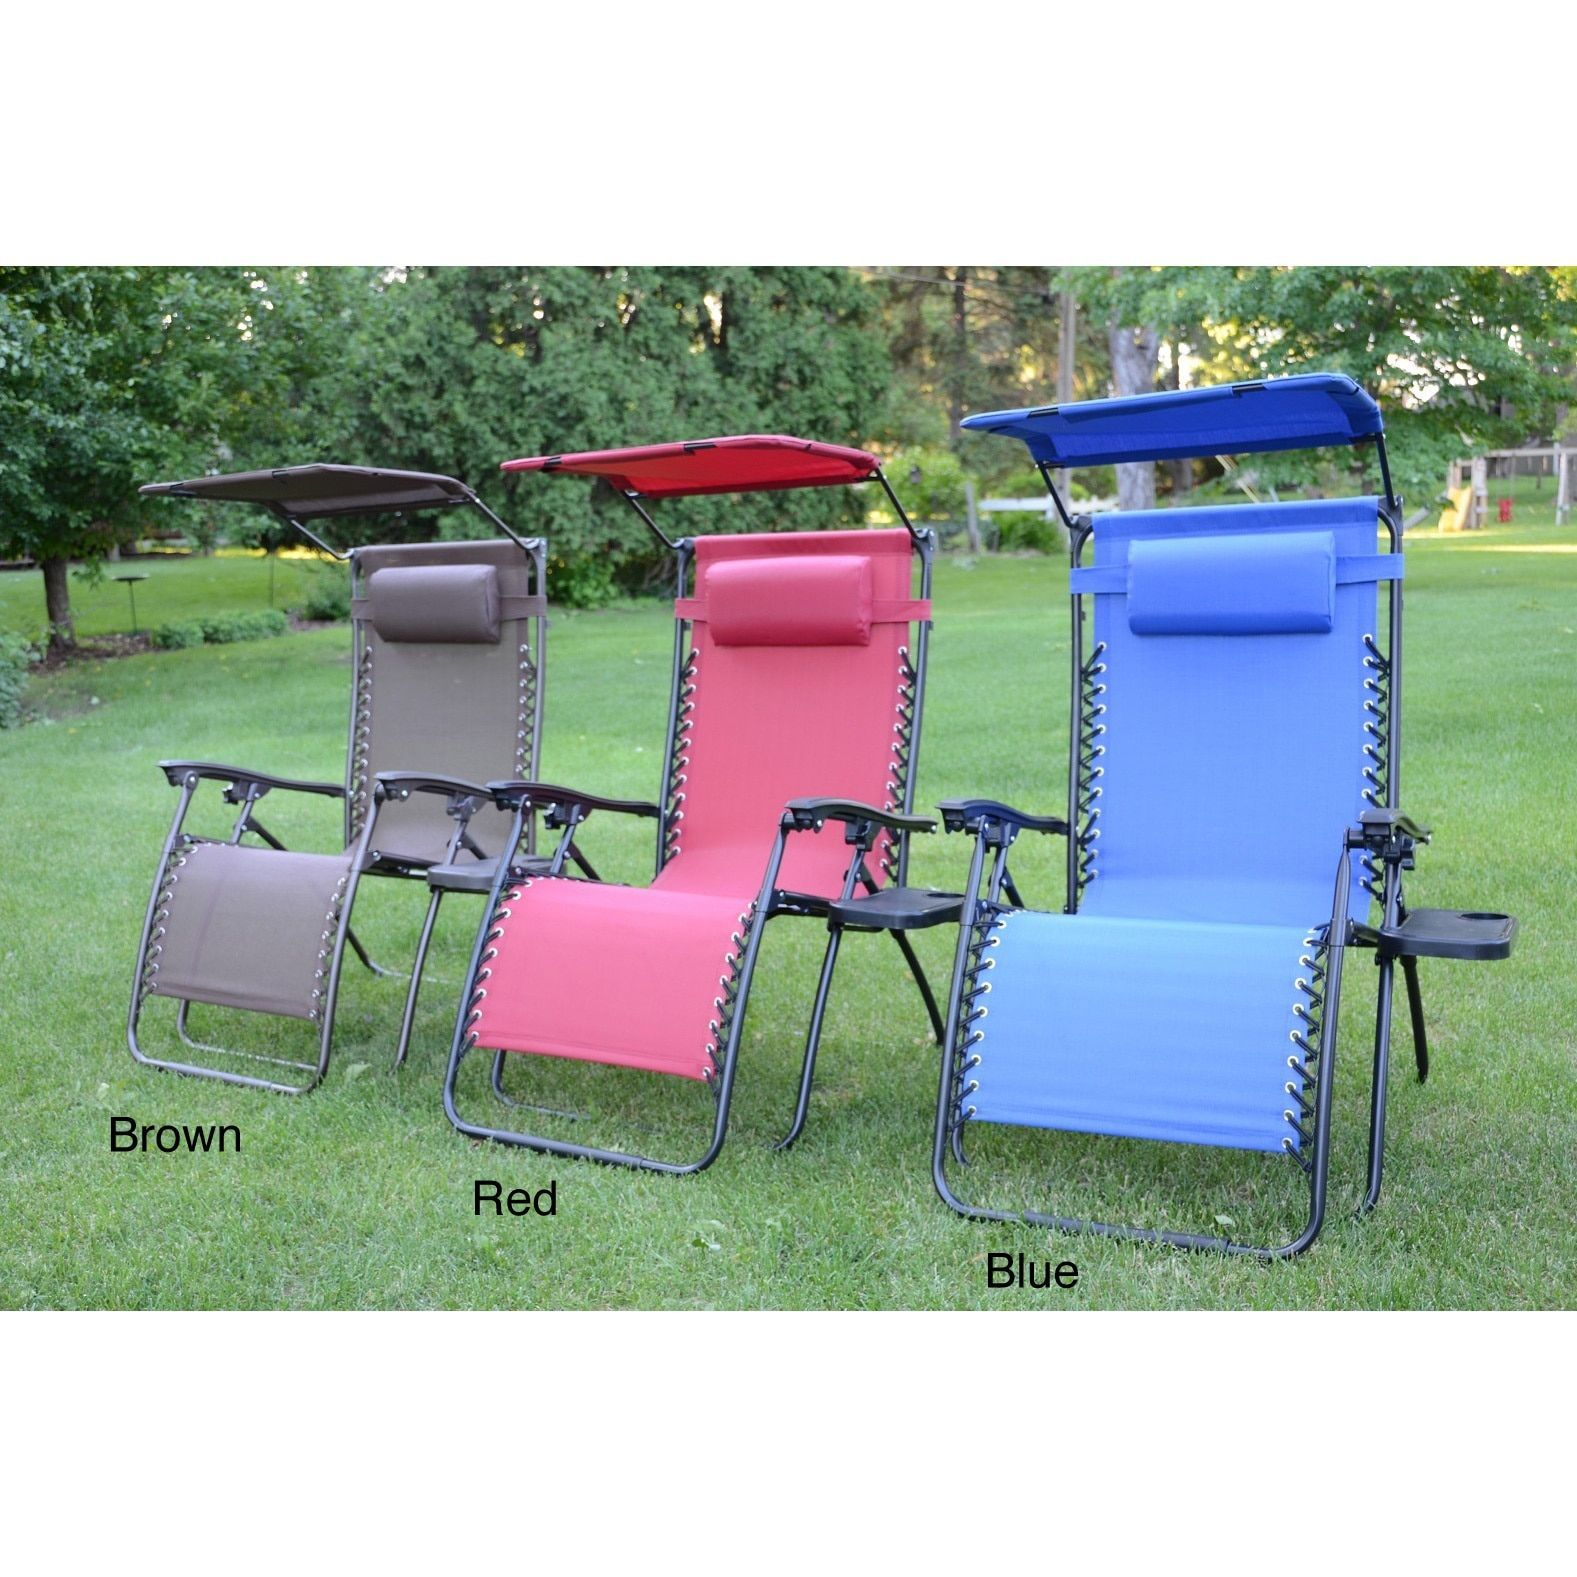 Styled Shopping Oversized Extra Large Zero Gravity Chair With Canopy And Tray Zero Gravity Chair Lounge Chair Outdoor Target Lounge Chairs